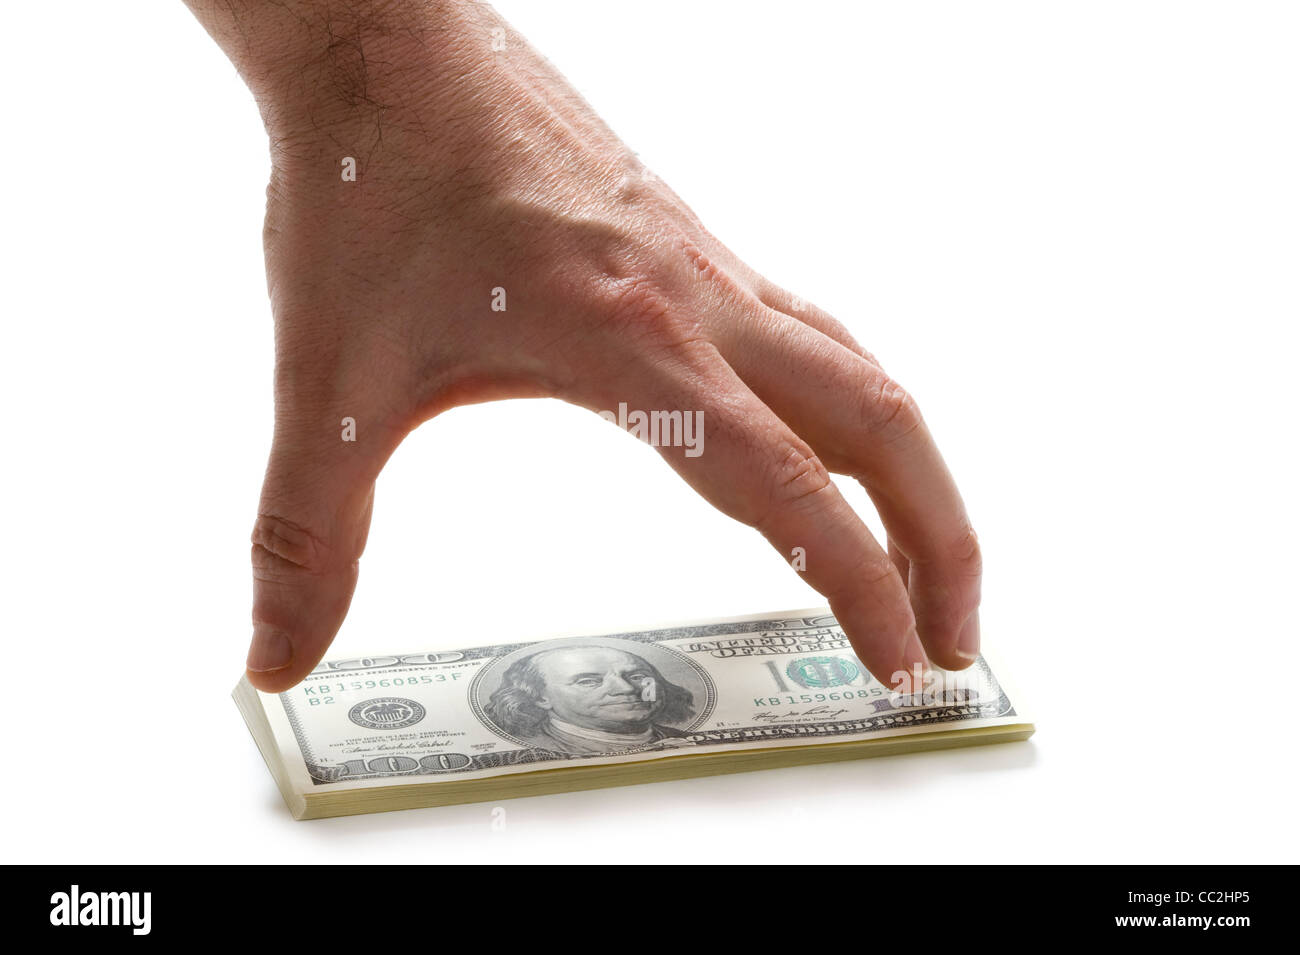 a male hand reaching for a wad of american 100 (hundred) dollar bills - Stock Image